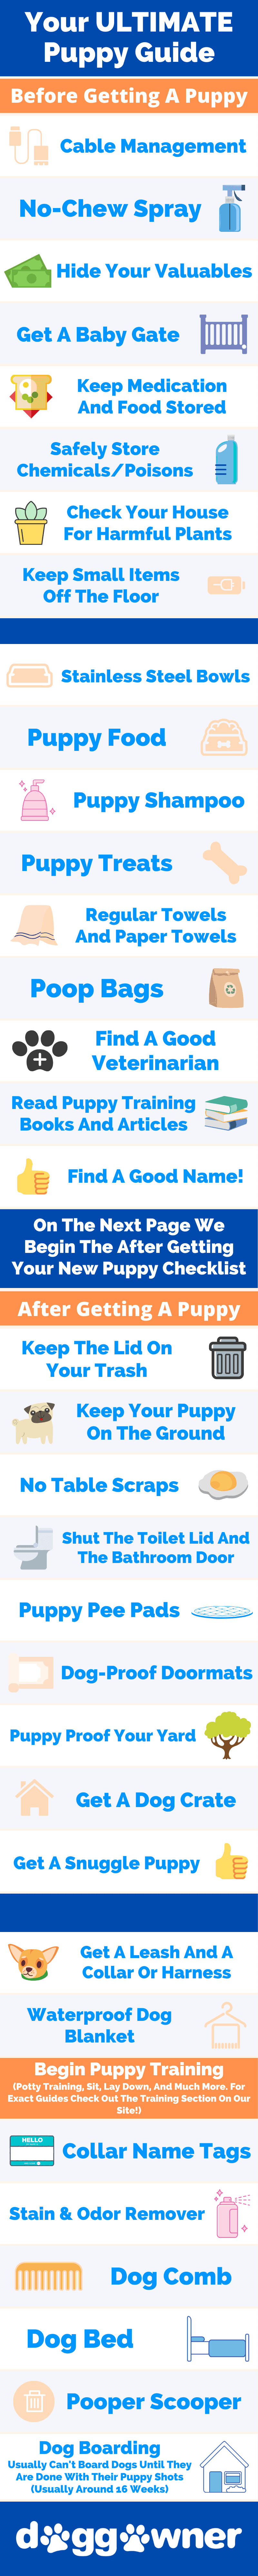 Puppy Checklist And Guide Infographic